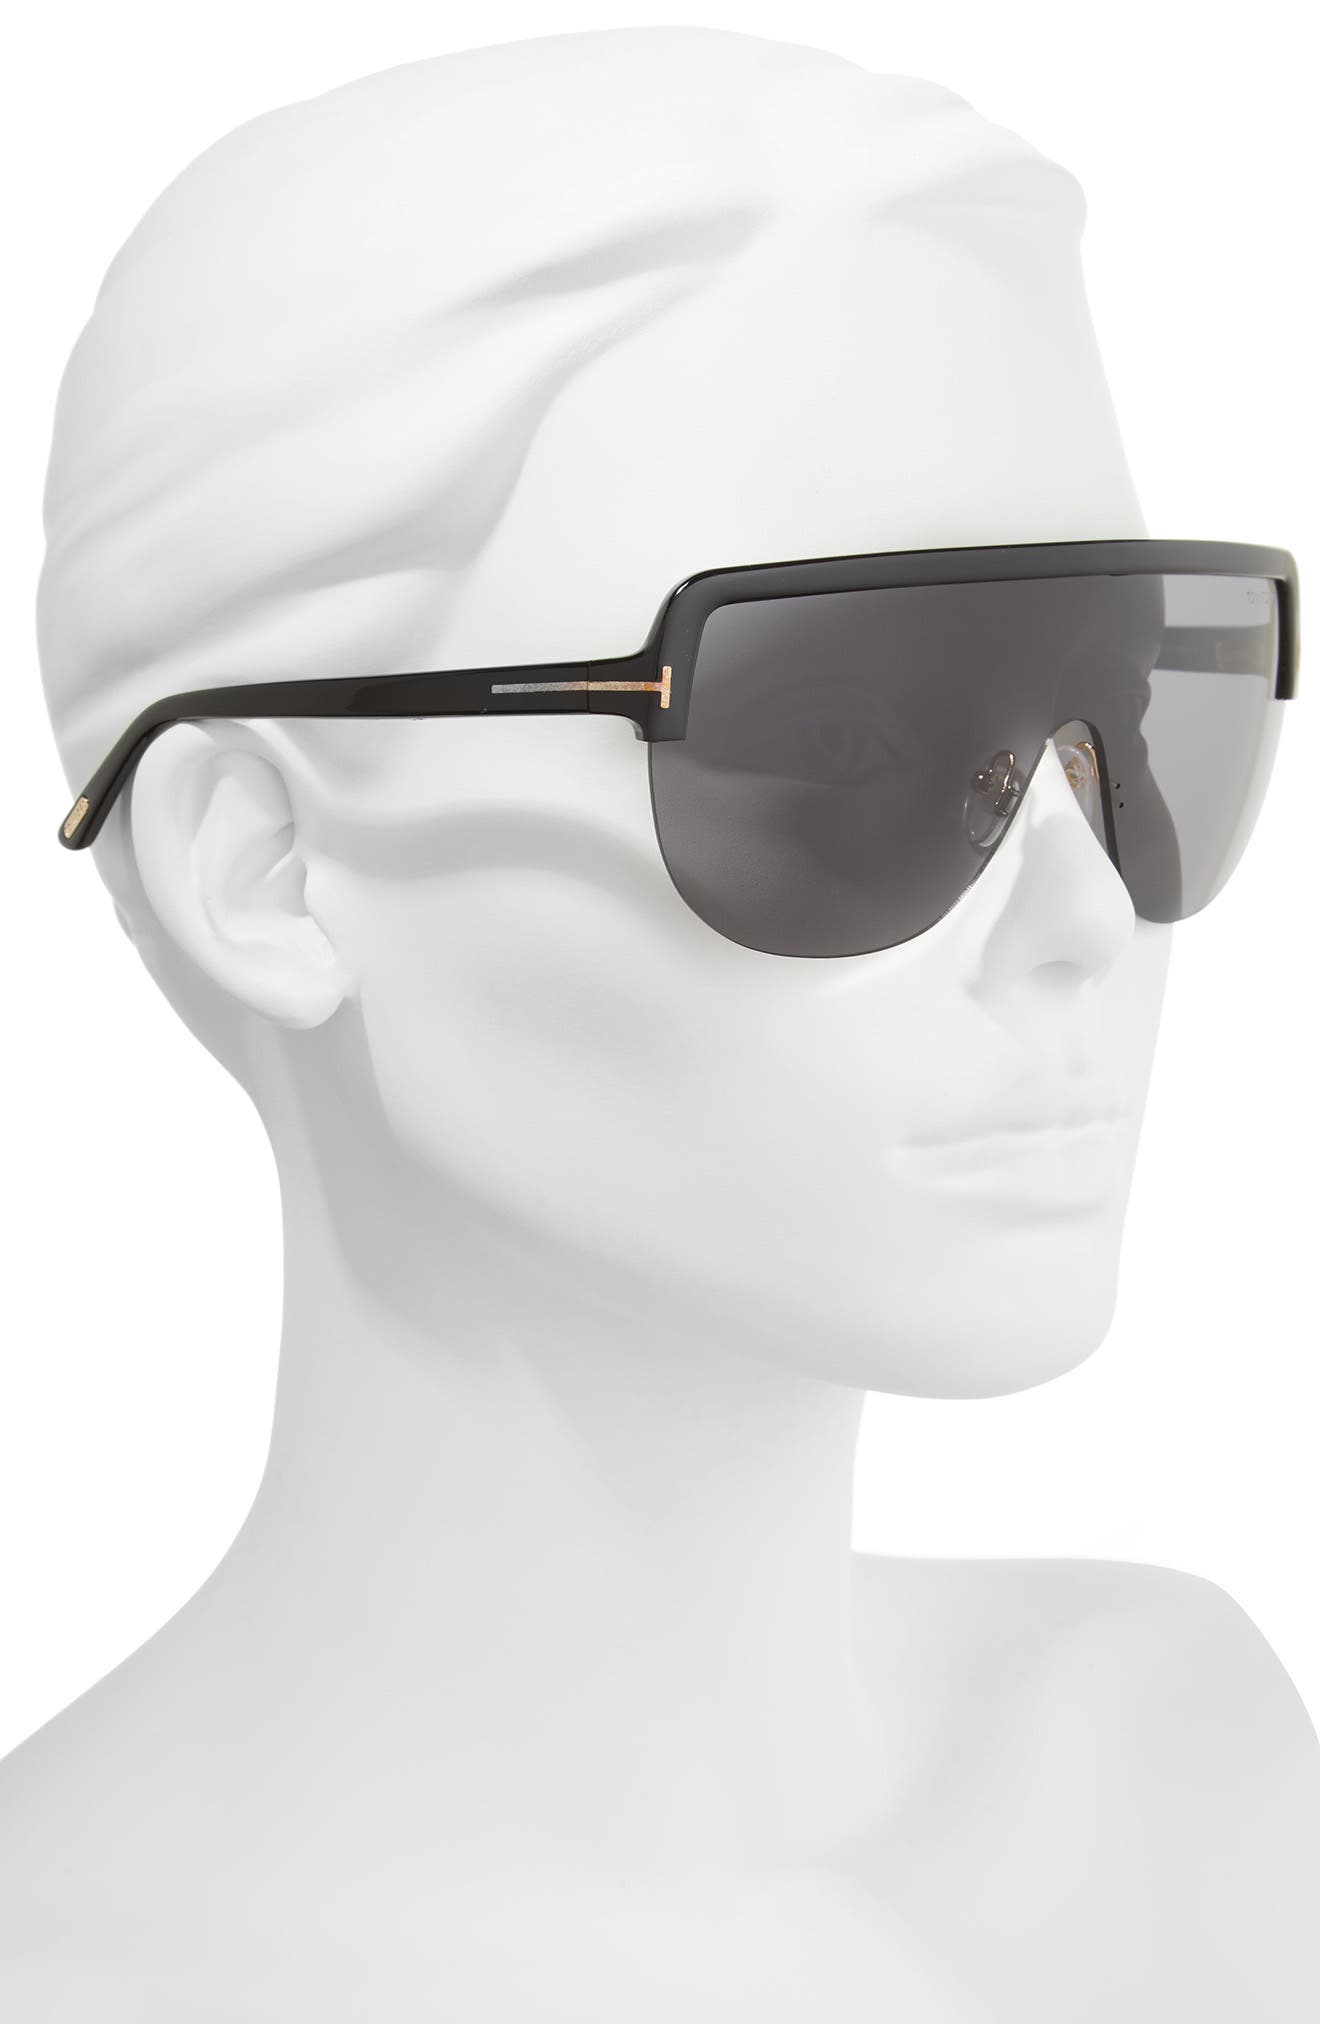 Angus Shield Sunglasses,                             Alternate thumbnail 2, color,                             Shiny Black/ Smoke